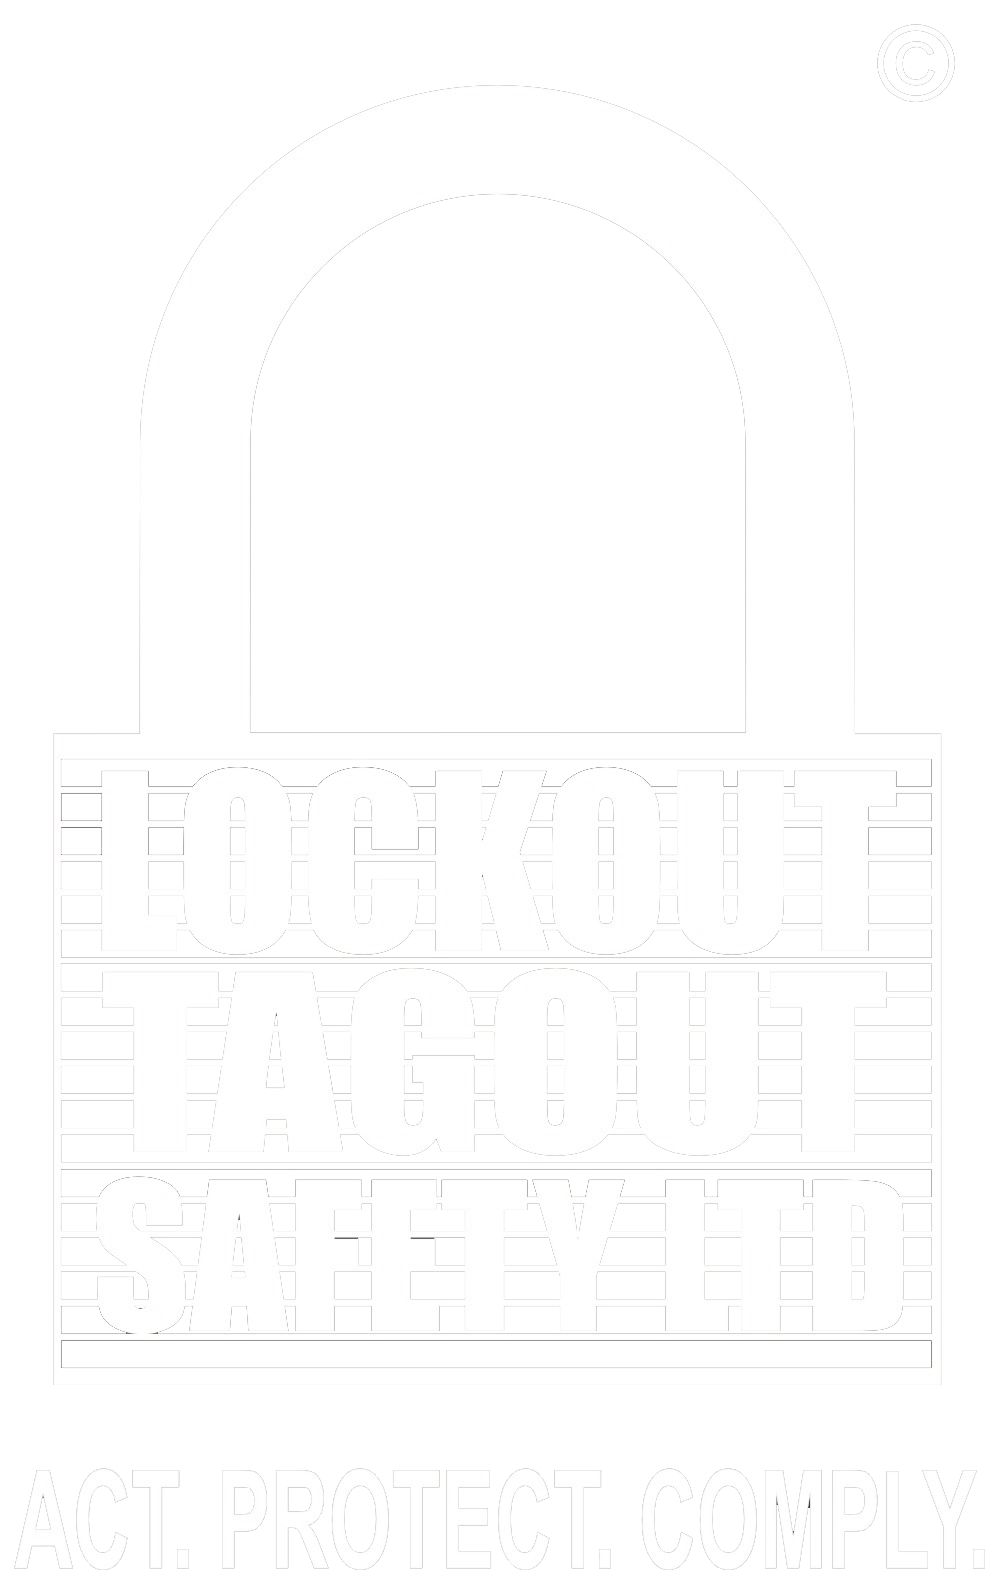 Lockout-Tagout.co.uk